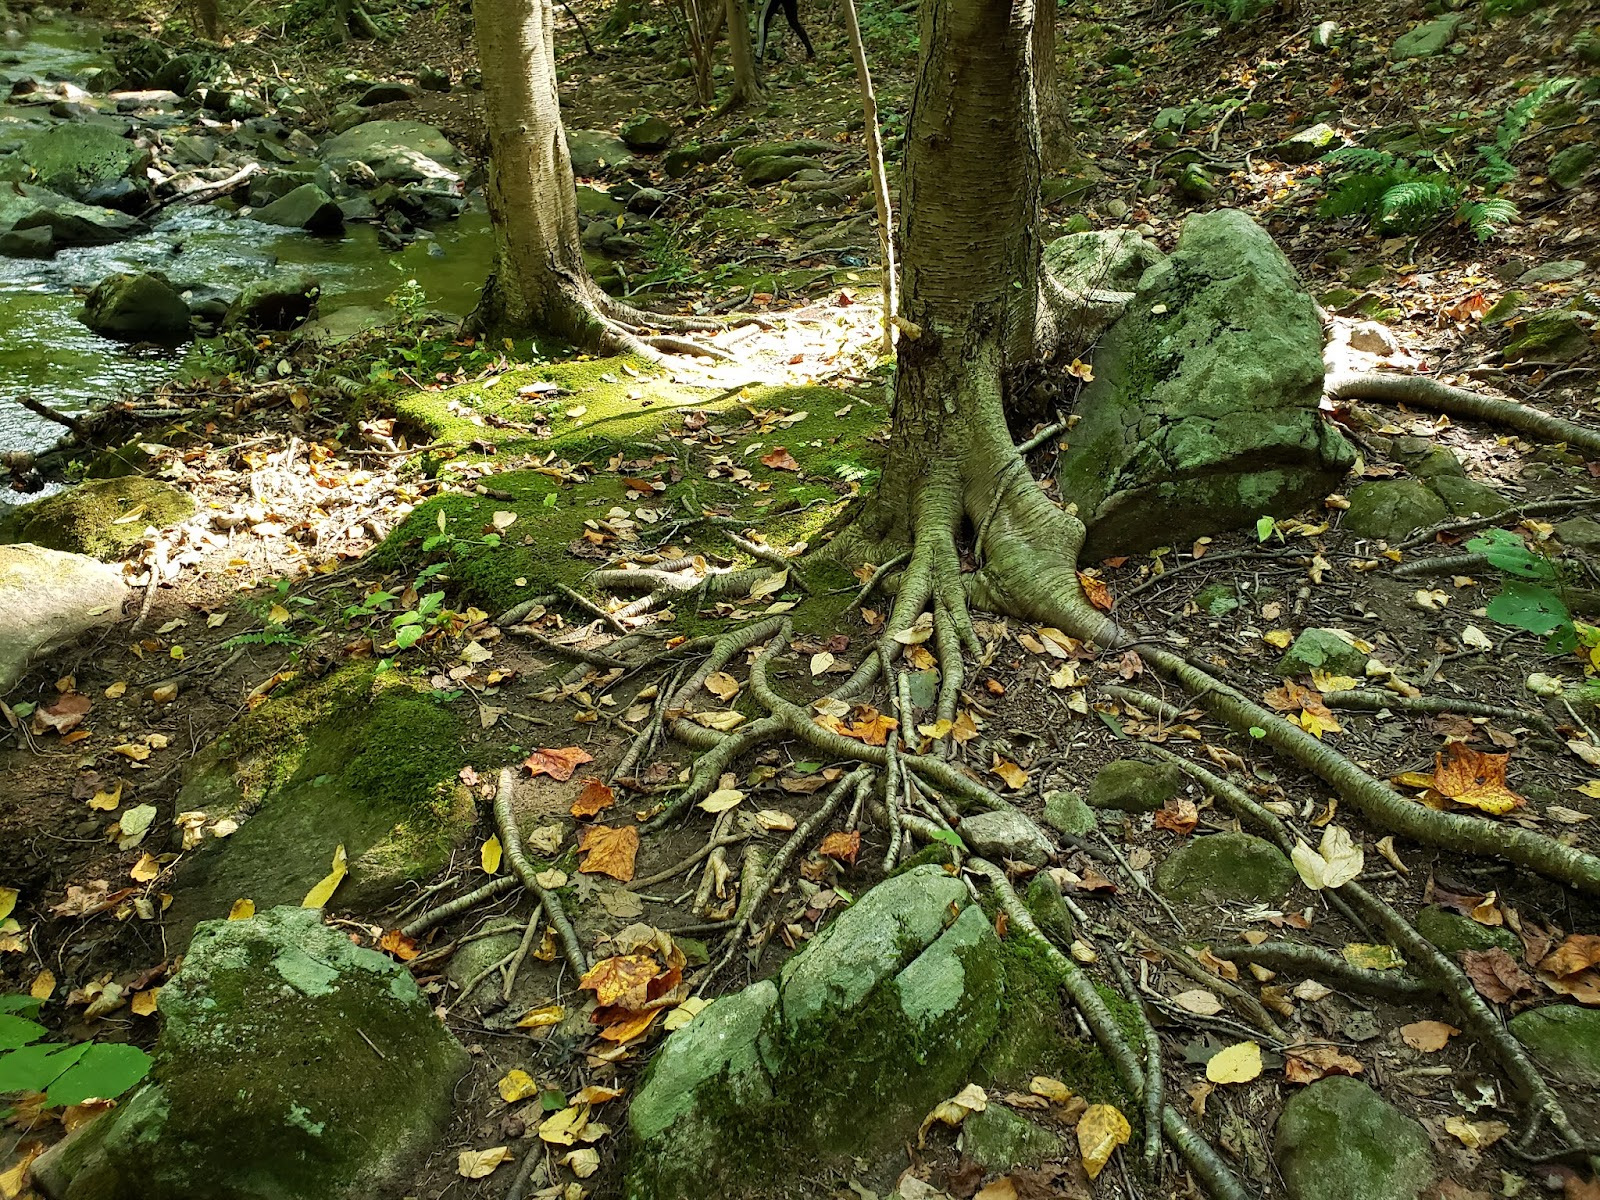 Shallow root system of trees in Roaring Rock Park